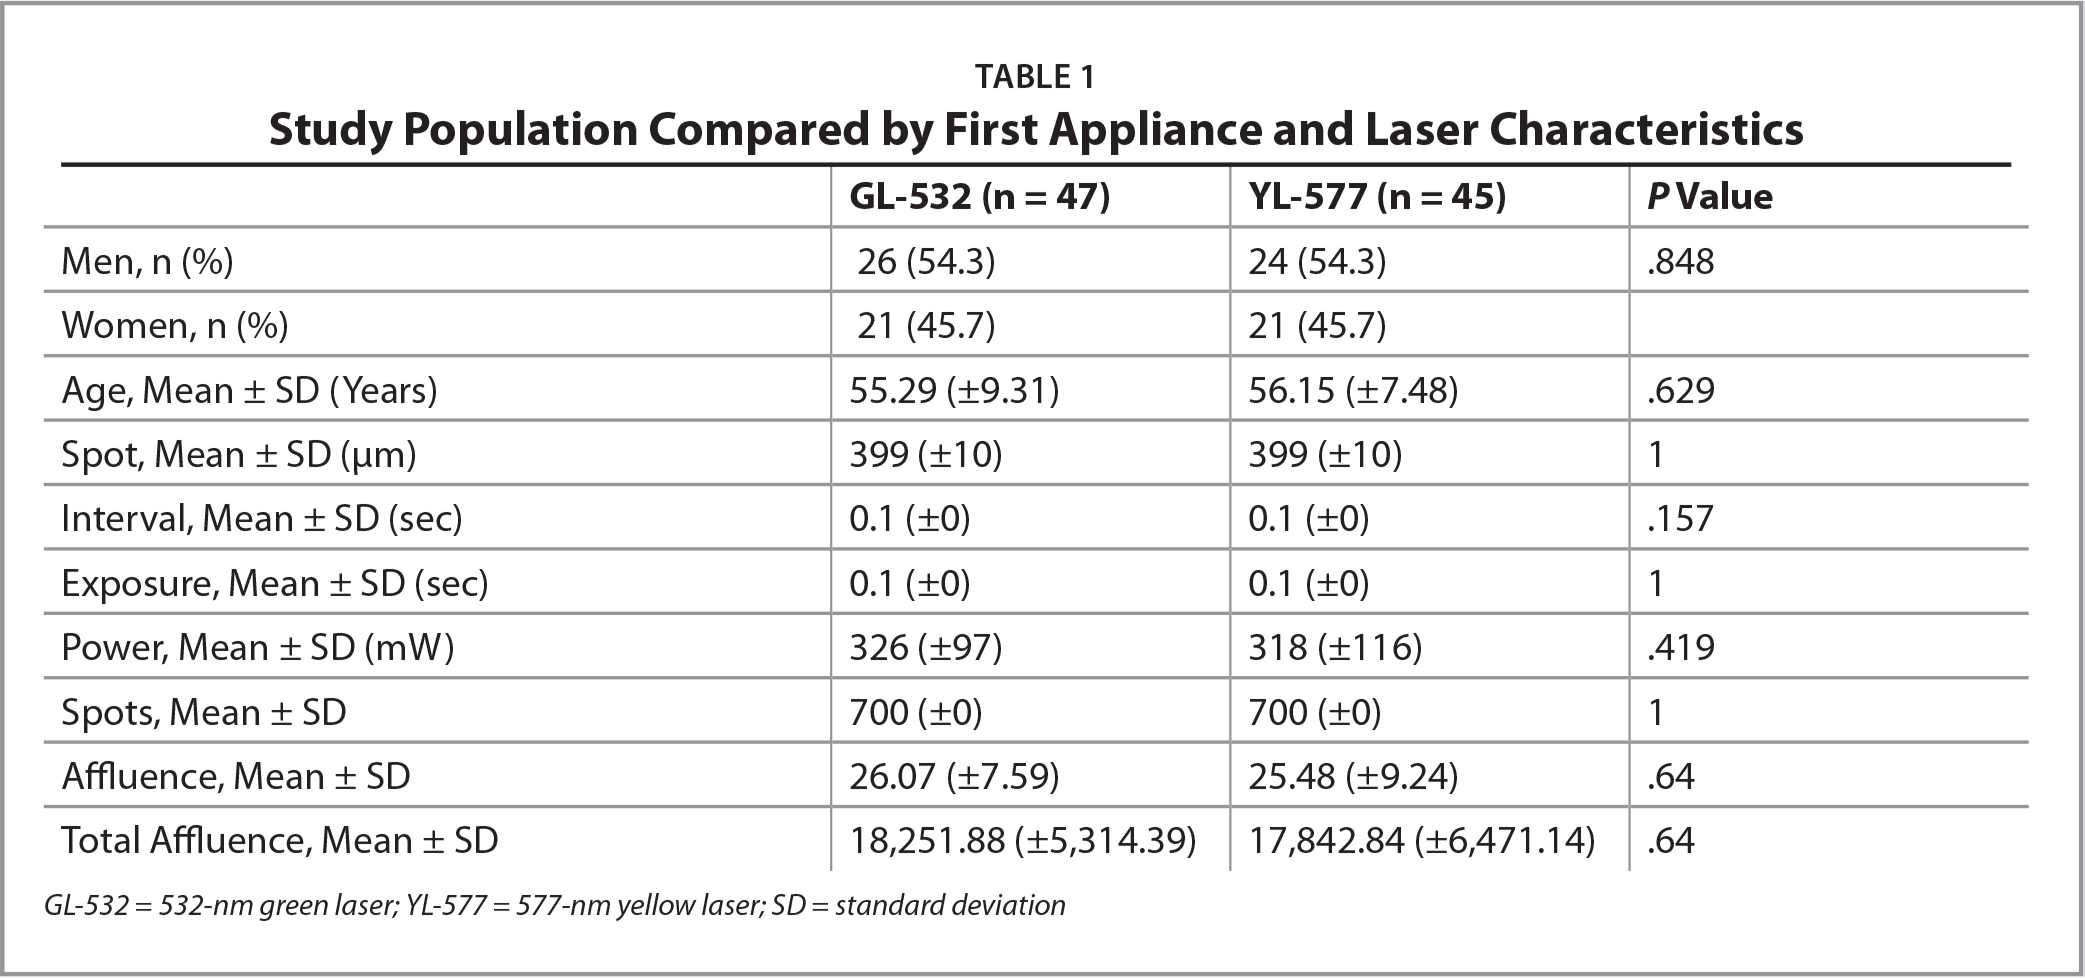 Study Population Compared by First Appliance and Laser Characteristics